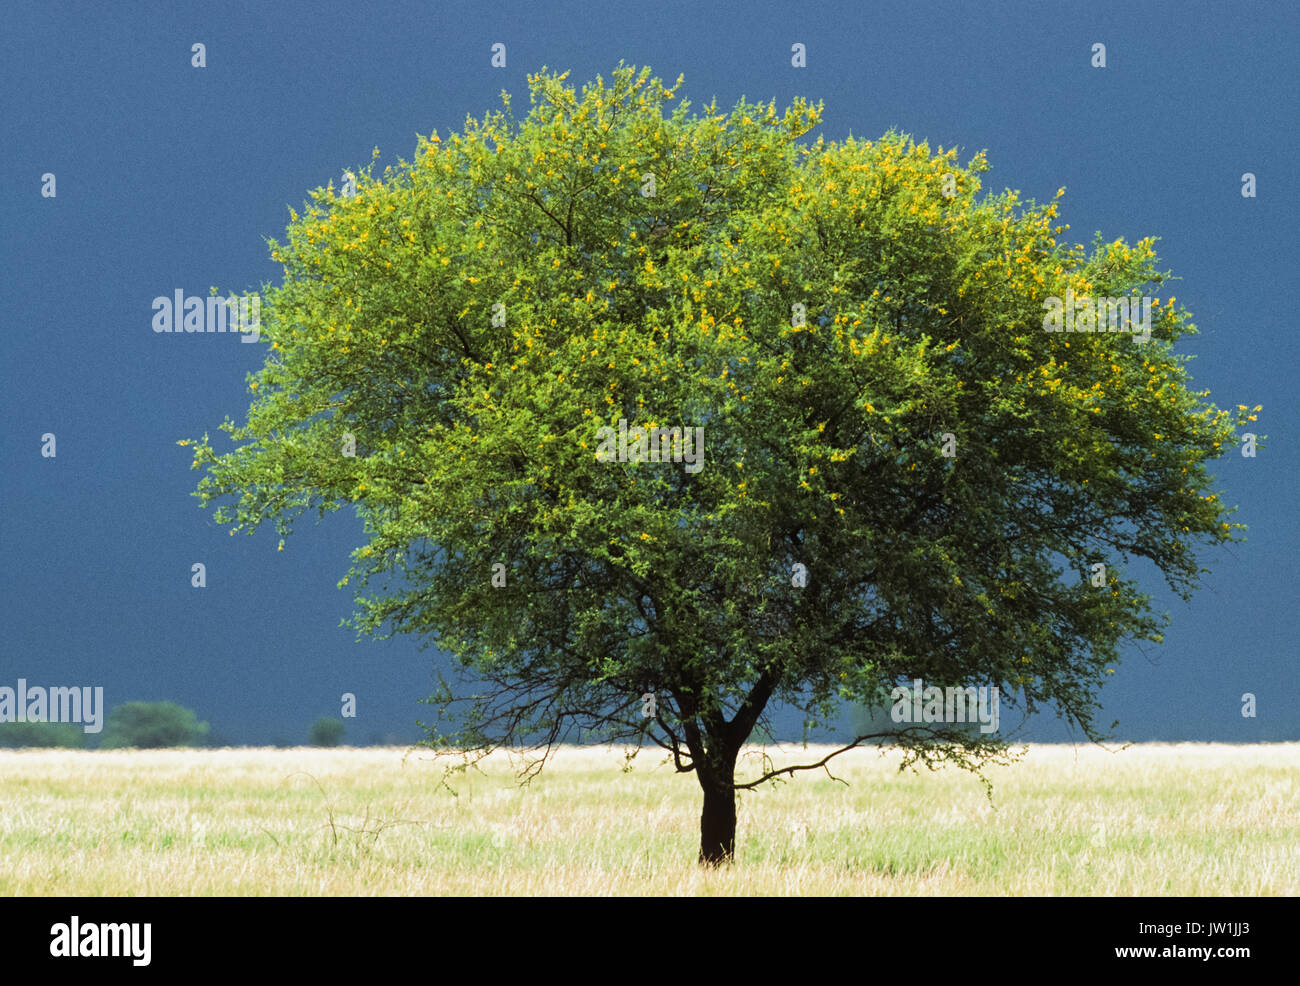 Acacia tree growing in grassland habitat, Blackbuck National Park, Velavadar, Gujarat, India - Stock Image